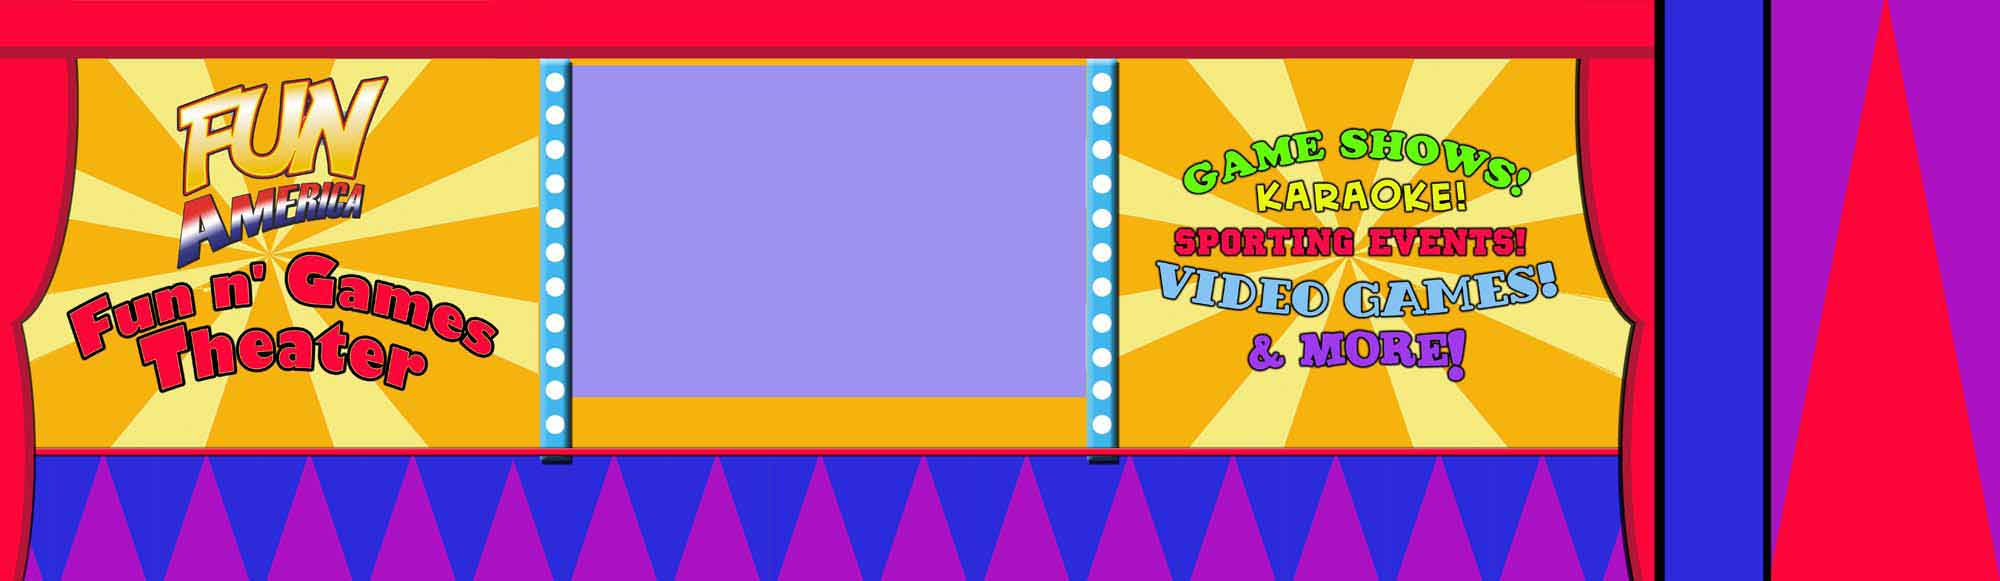 FUNNGAMES THEATER copy